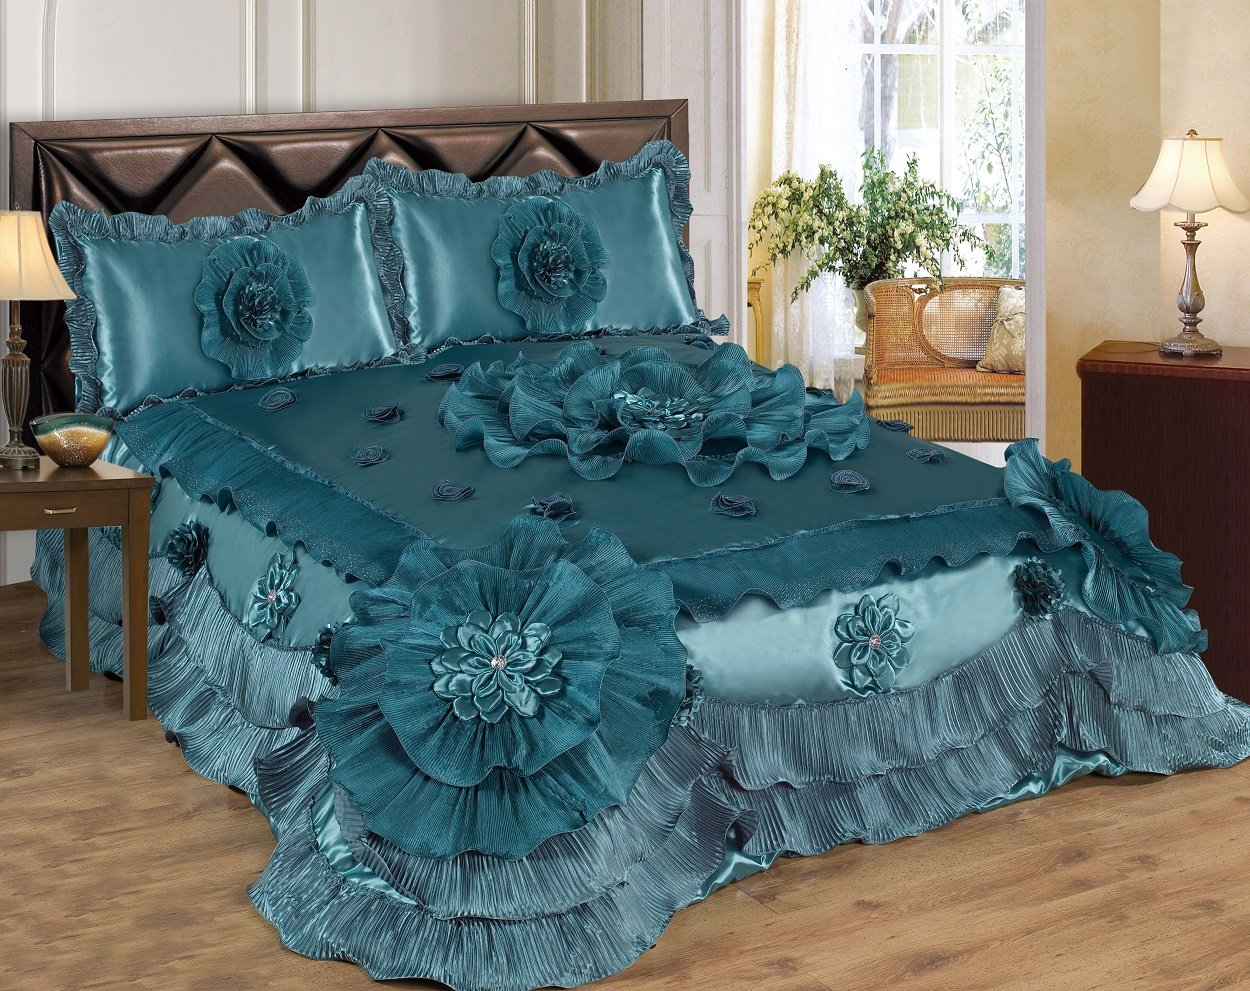 stripe down suede sets teen red image at of queen king oversized good awesome size bedroom blue full comforter bedspread and touch faux clean comforters set class bedspreads wavy home bedding cadence